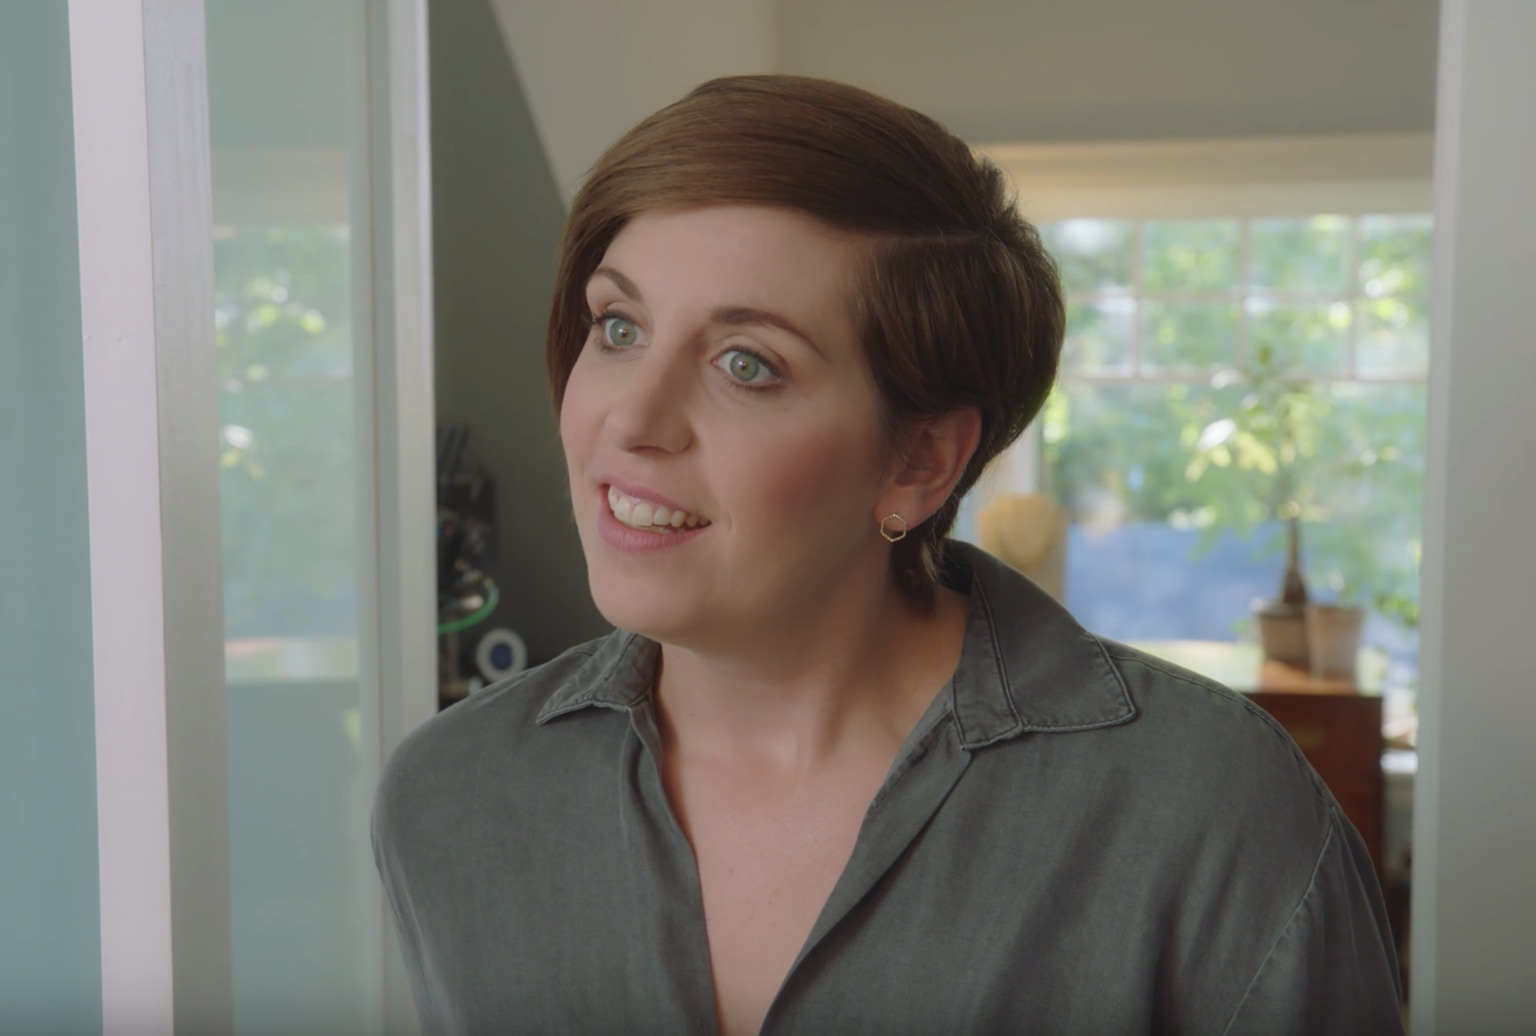 'Janet' - Interac Commercial